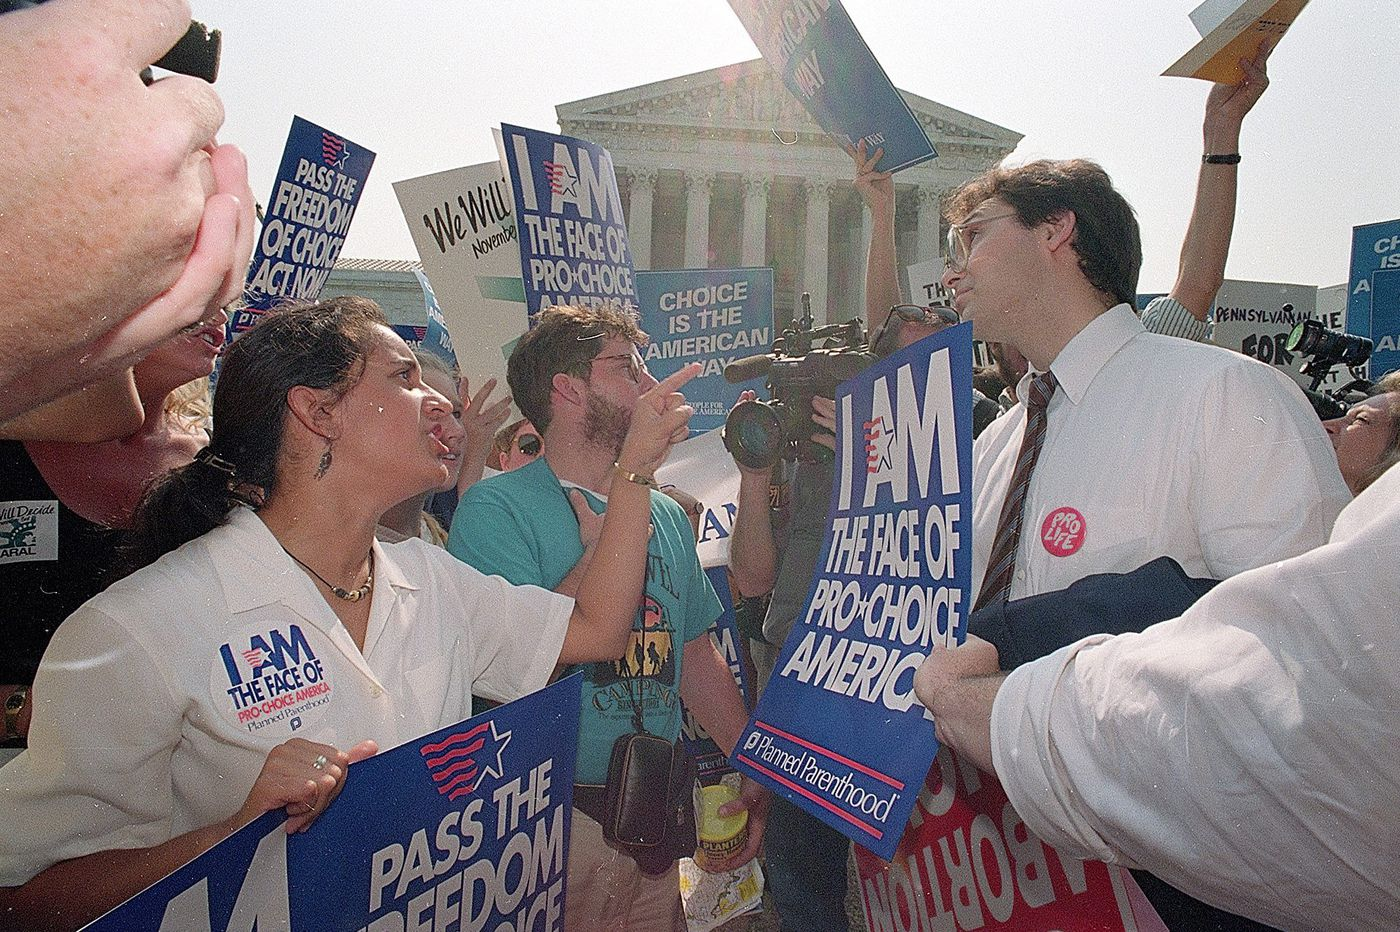 I fought to preserve abortion rights in 1992. Here's why I'm terrified about the Supreme Court now | Perspective